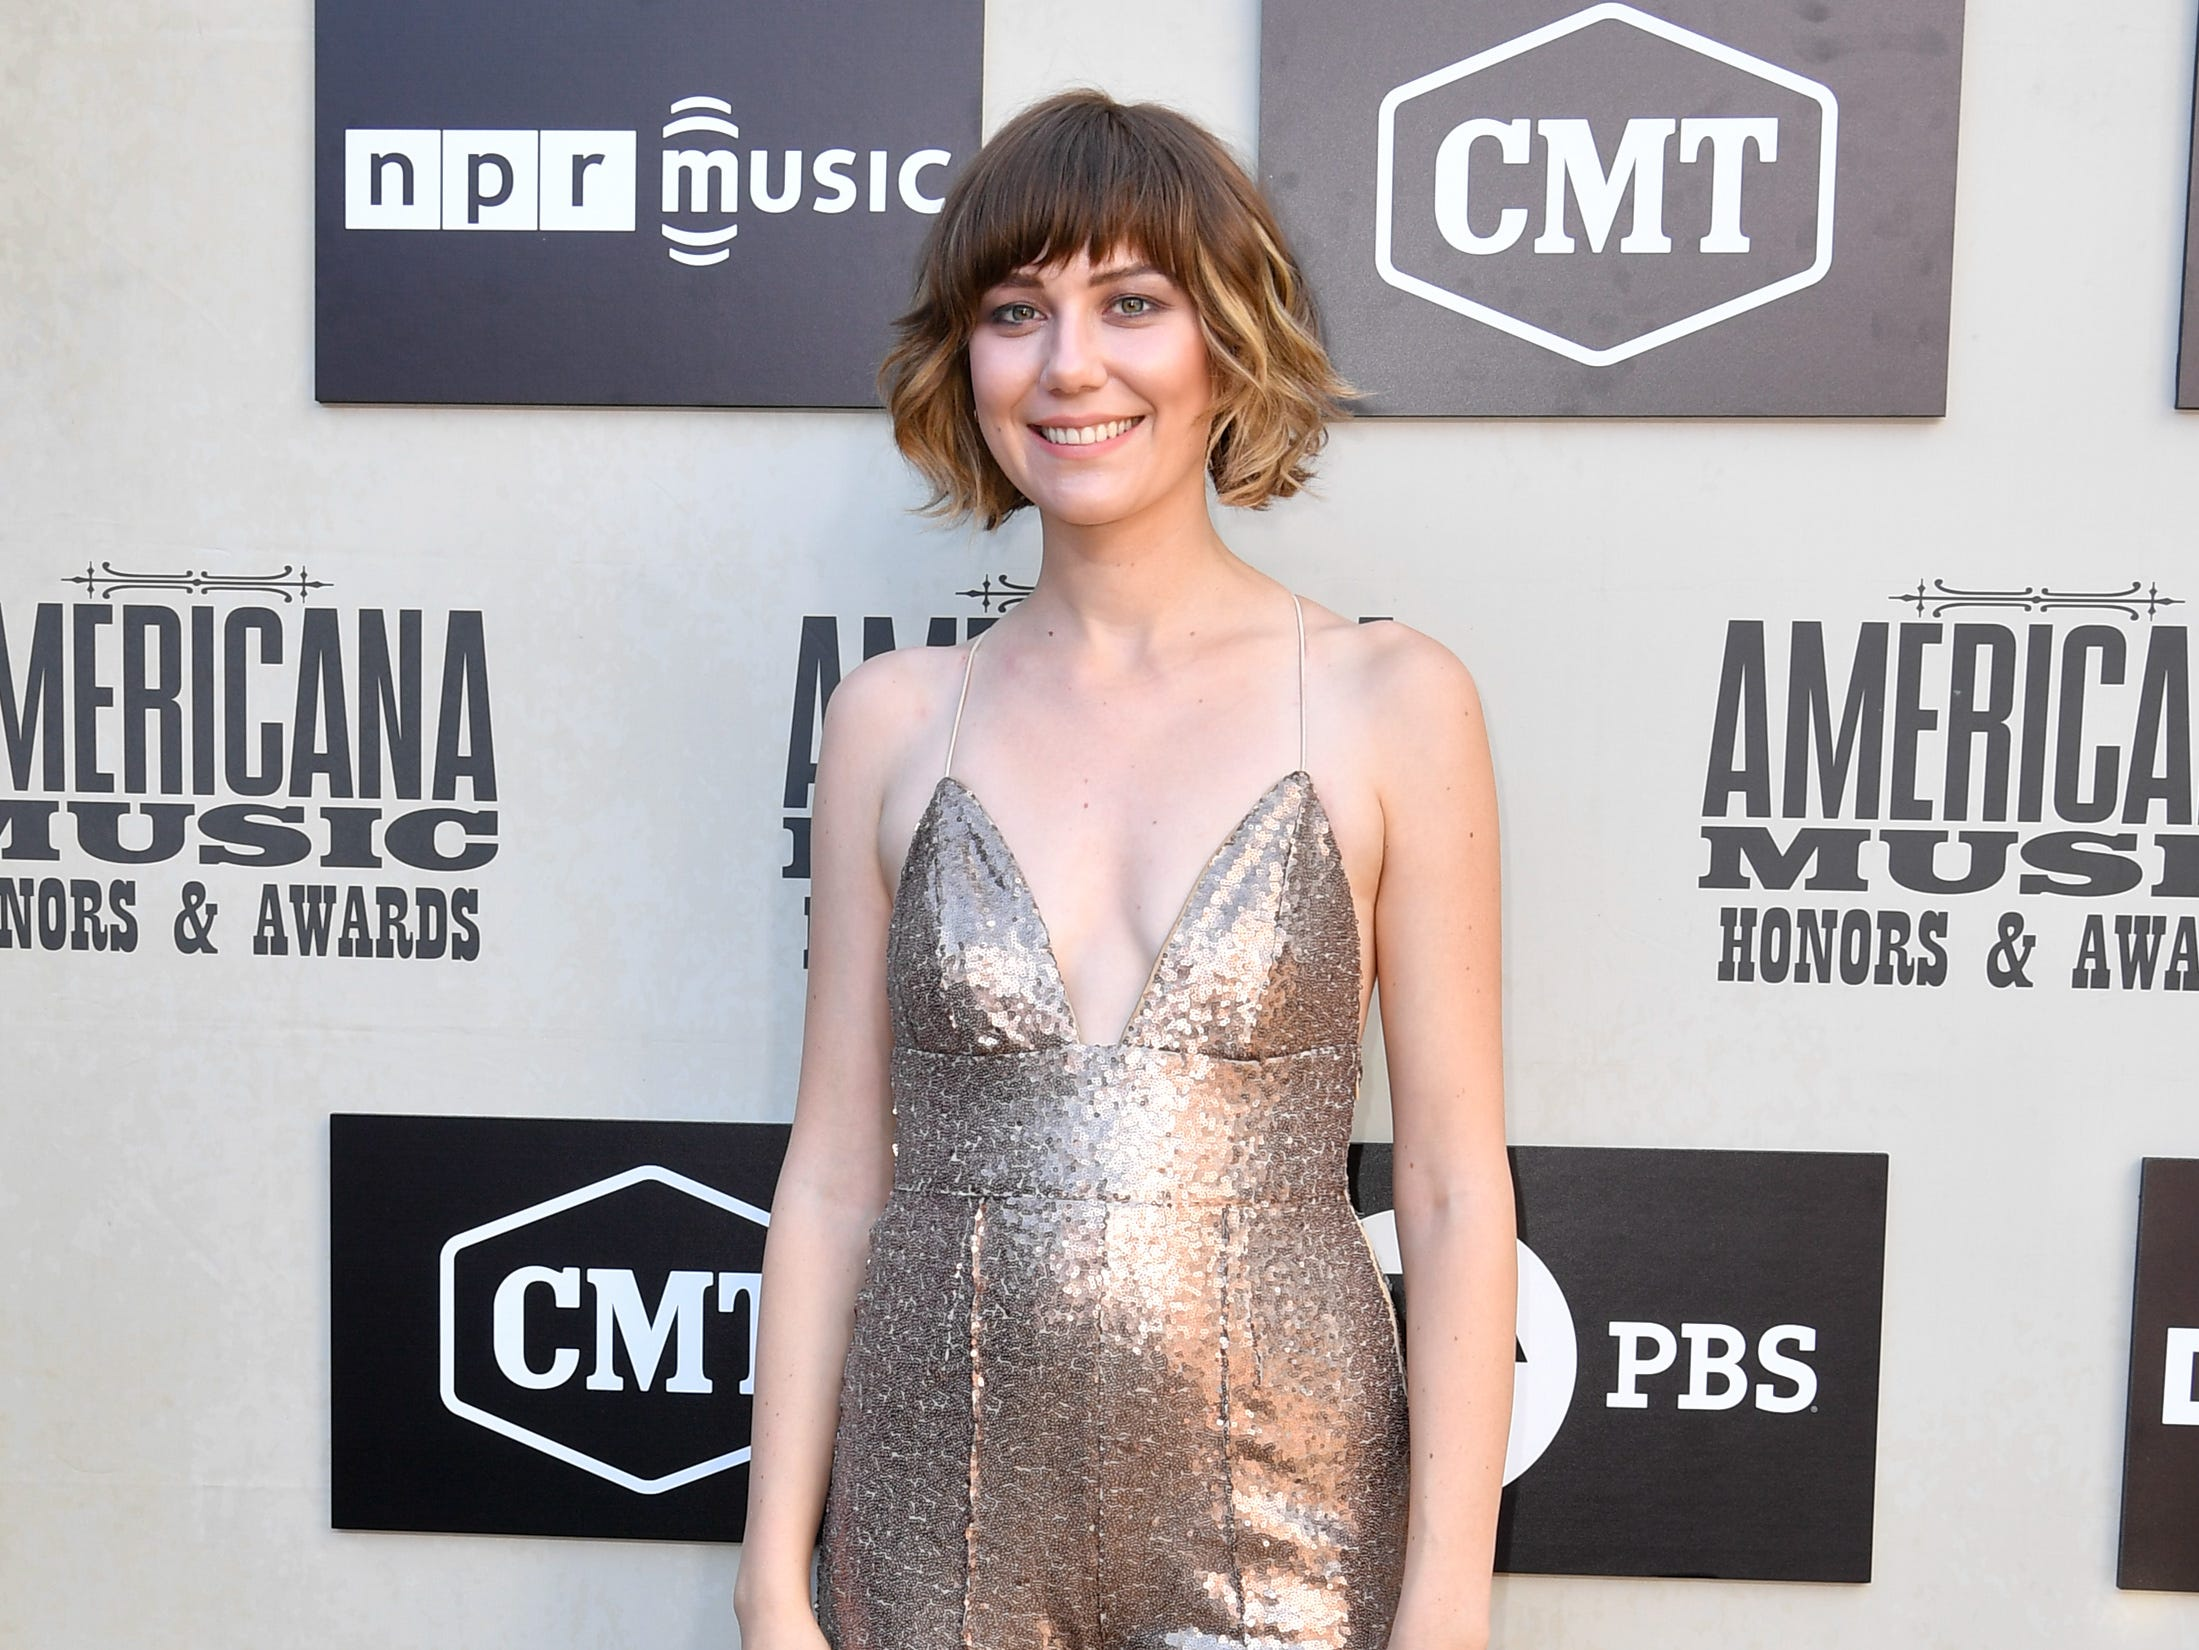 Molly Tuttle poses on the red carpet before the 2018 Americana Honors and Awards show at the Ryman Auditorium in Nashville, Tenn., Wednesday, Sept. 12, 2018.